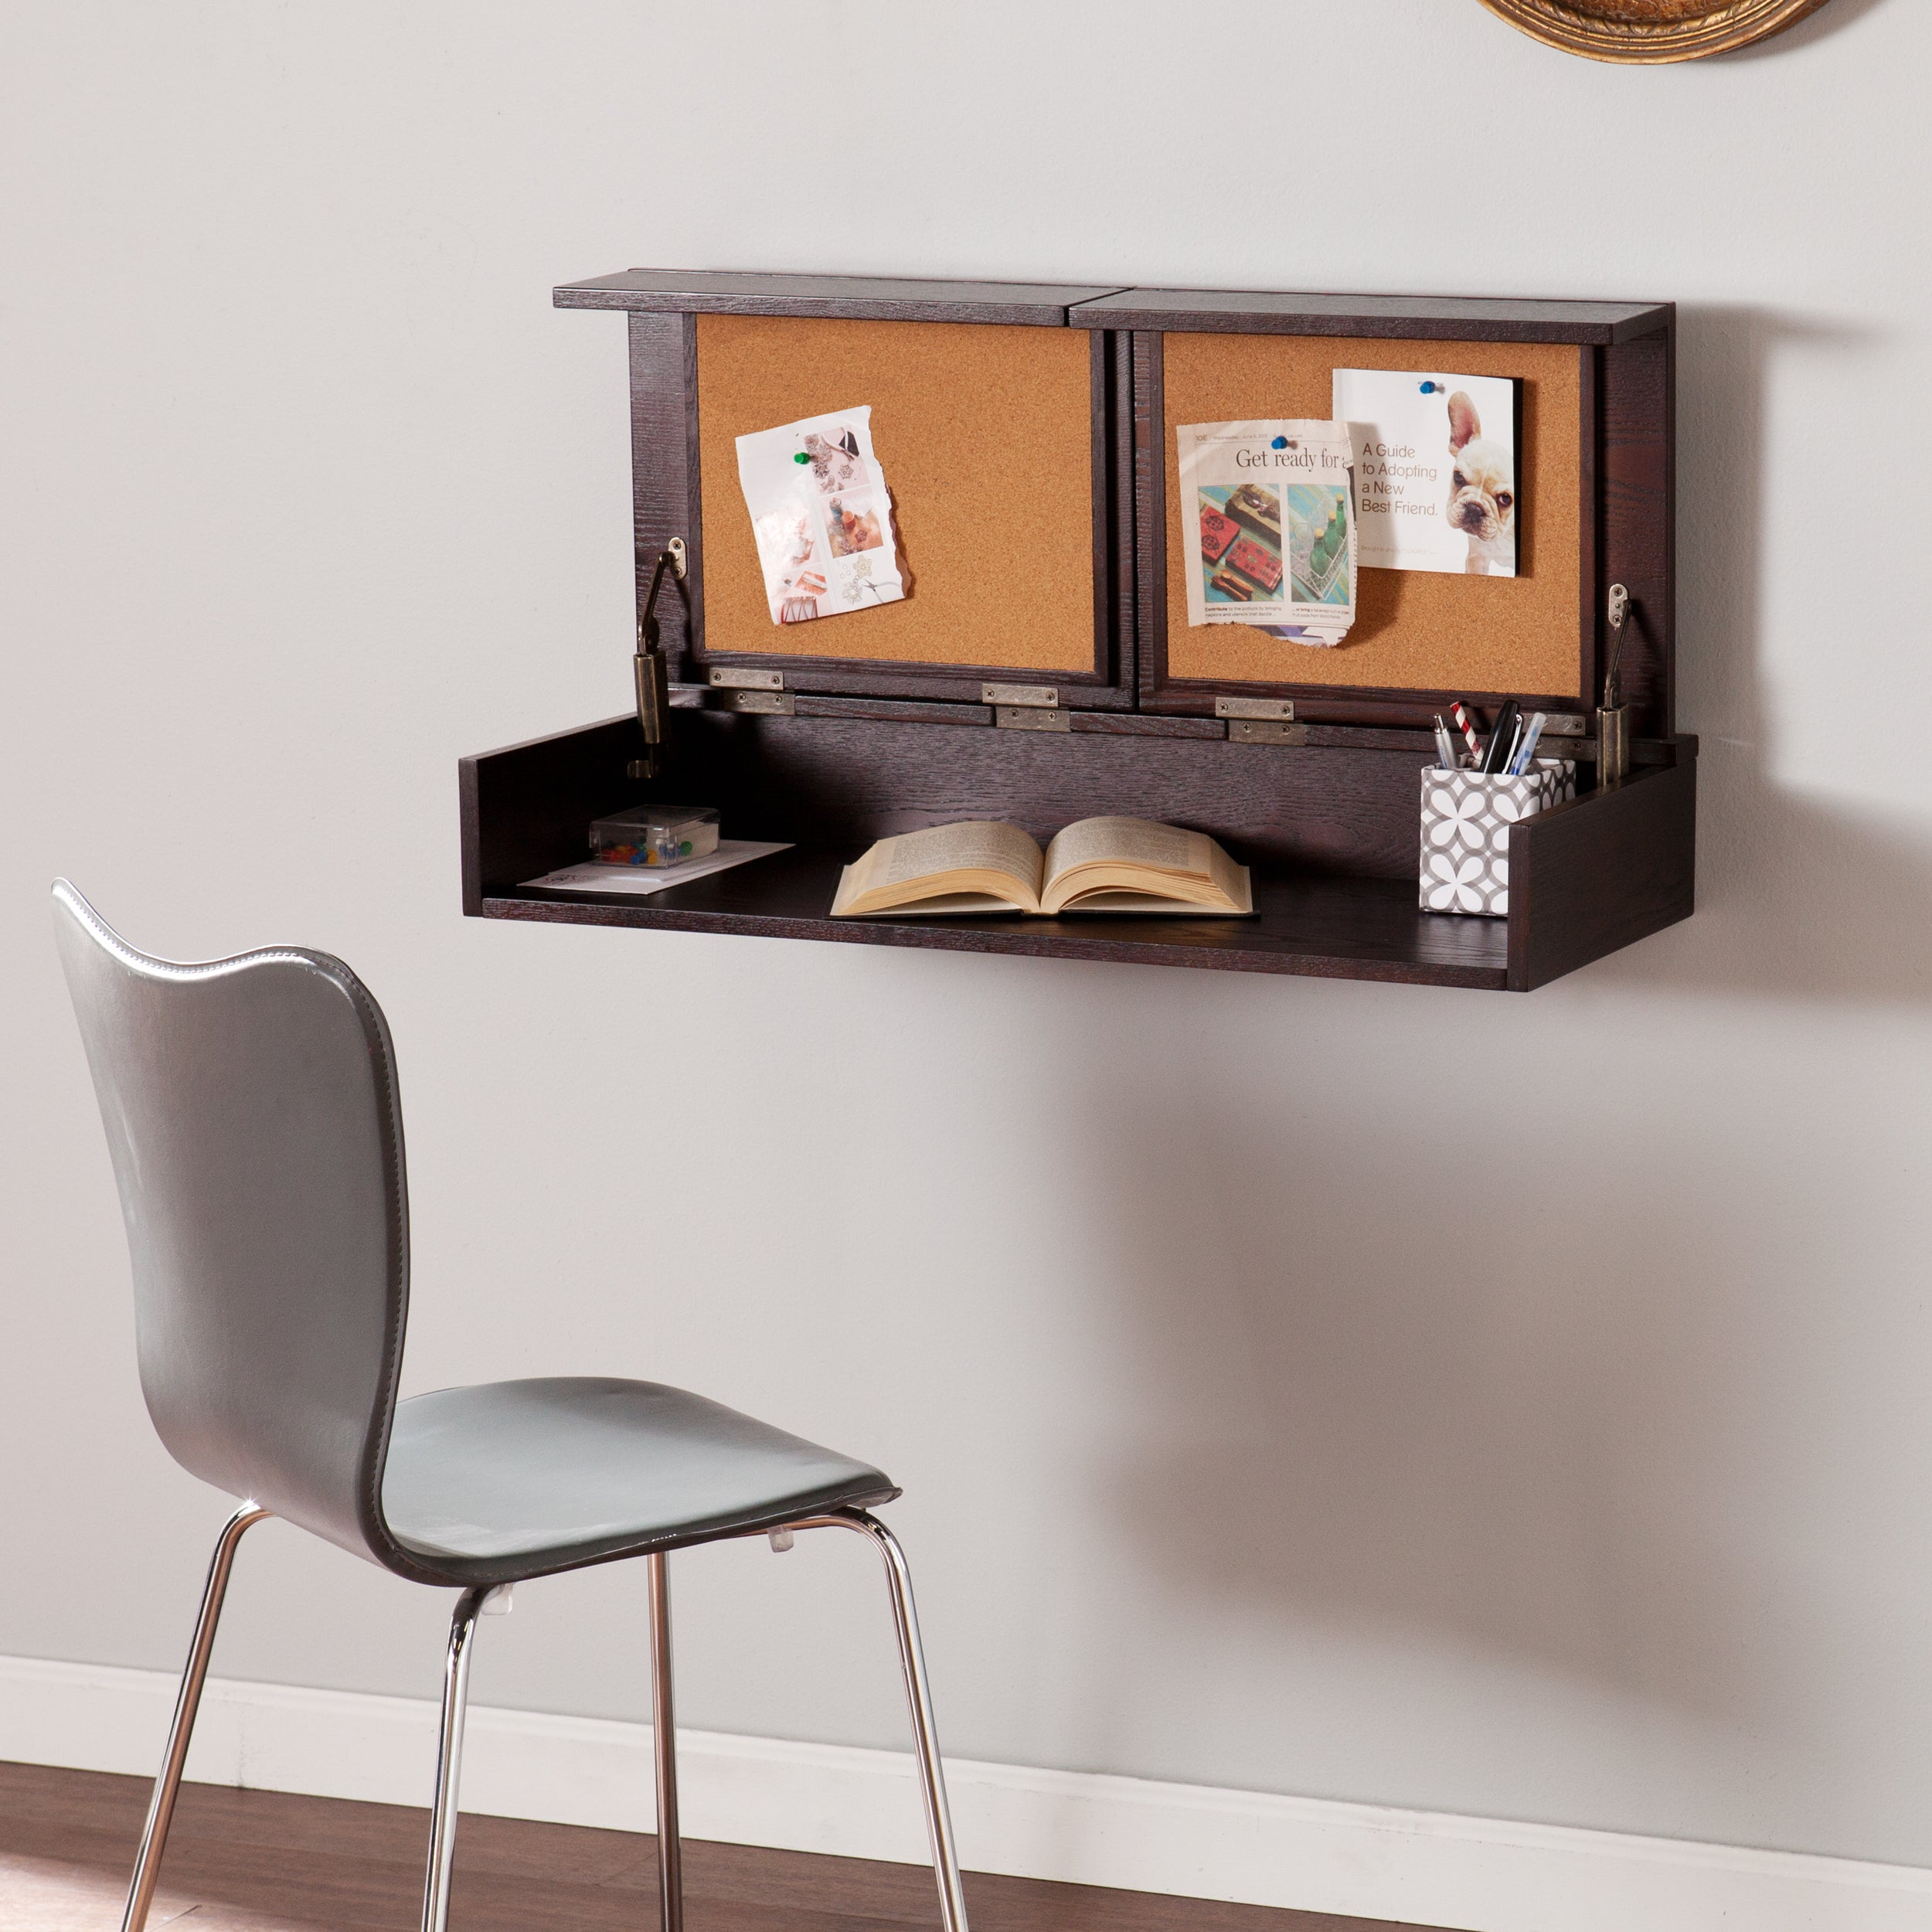 Harper Blvd Lenora Wall Mount Desk (OS4016OH), Brown, Siz...